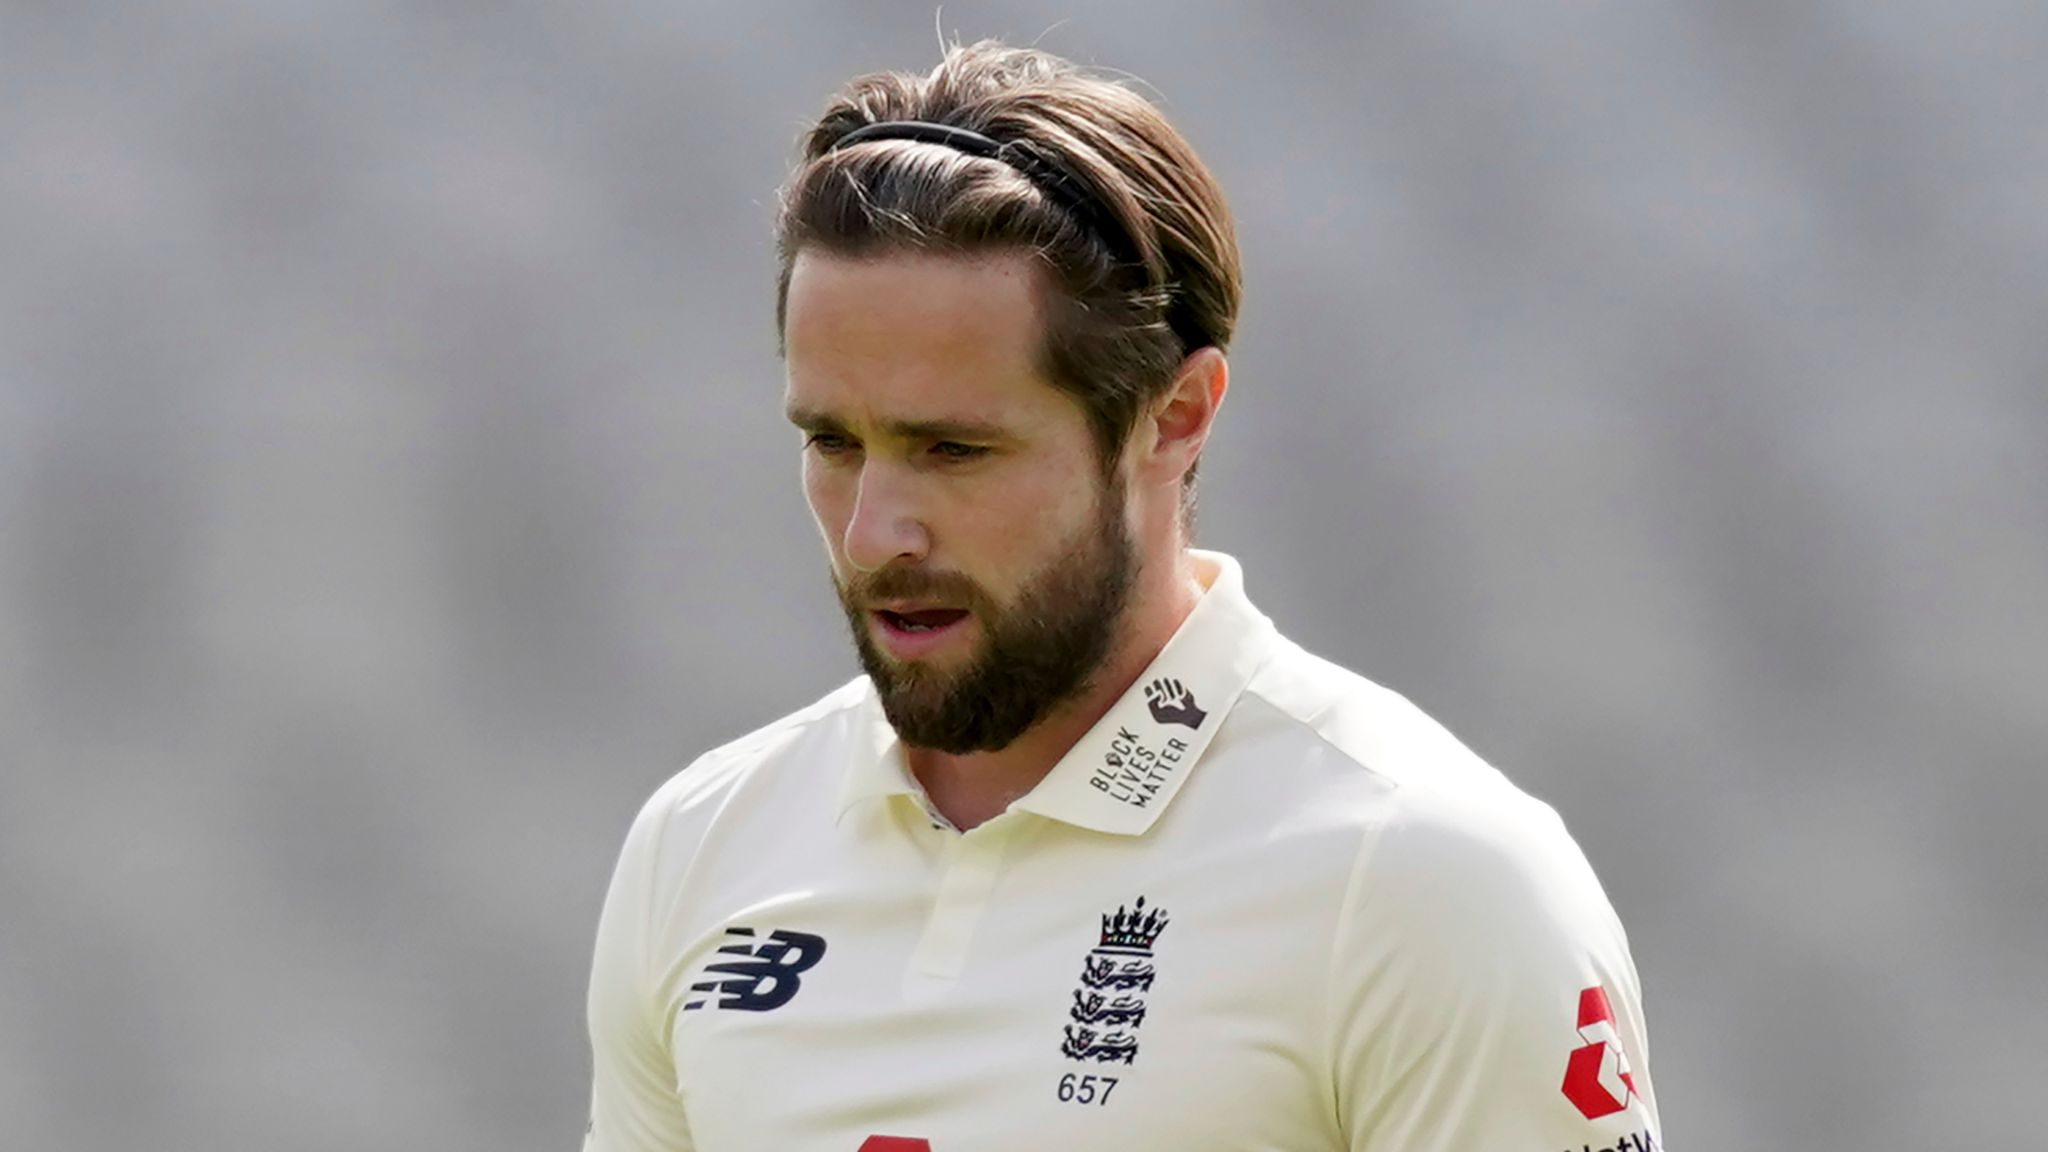 Chris Woakes: England all-rounder returns home from India without featuring  in Test match series | Cricket News | Sky Sports